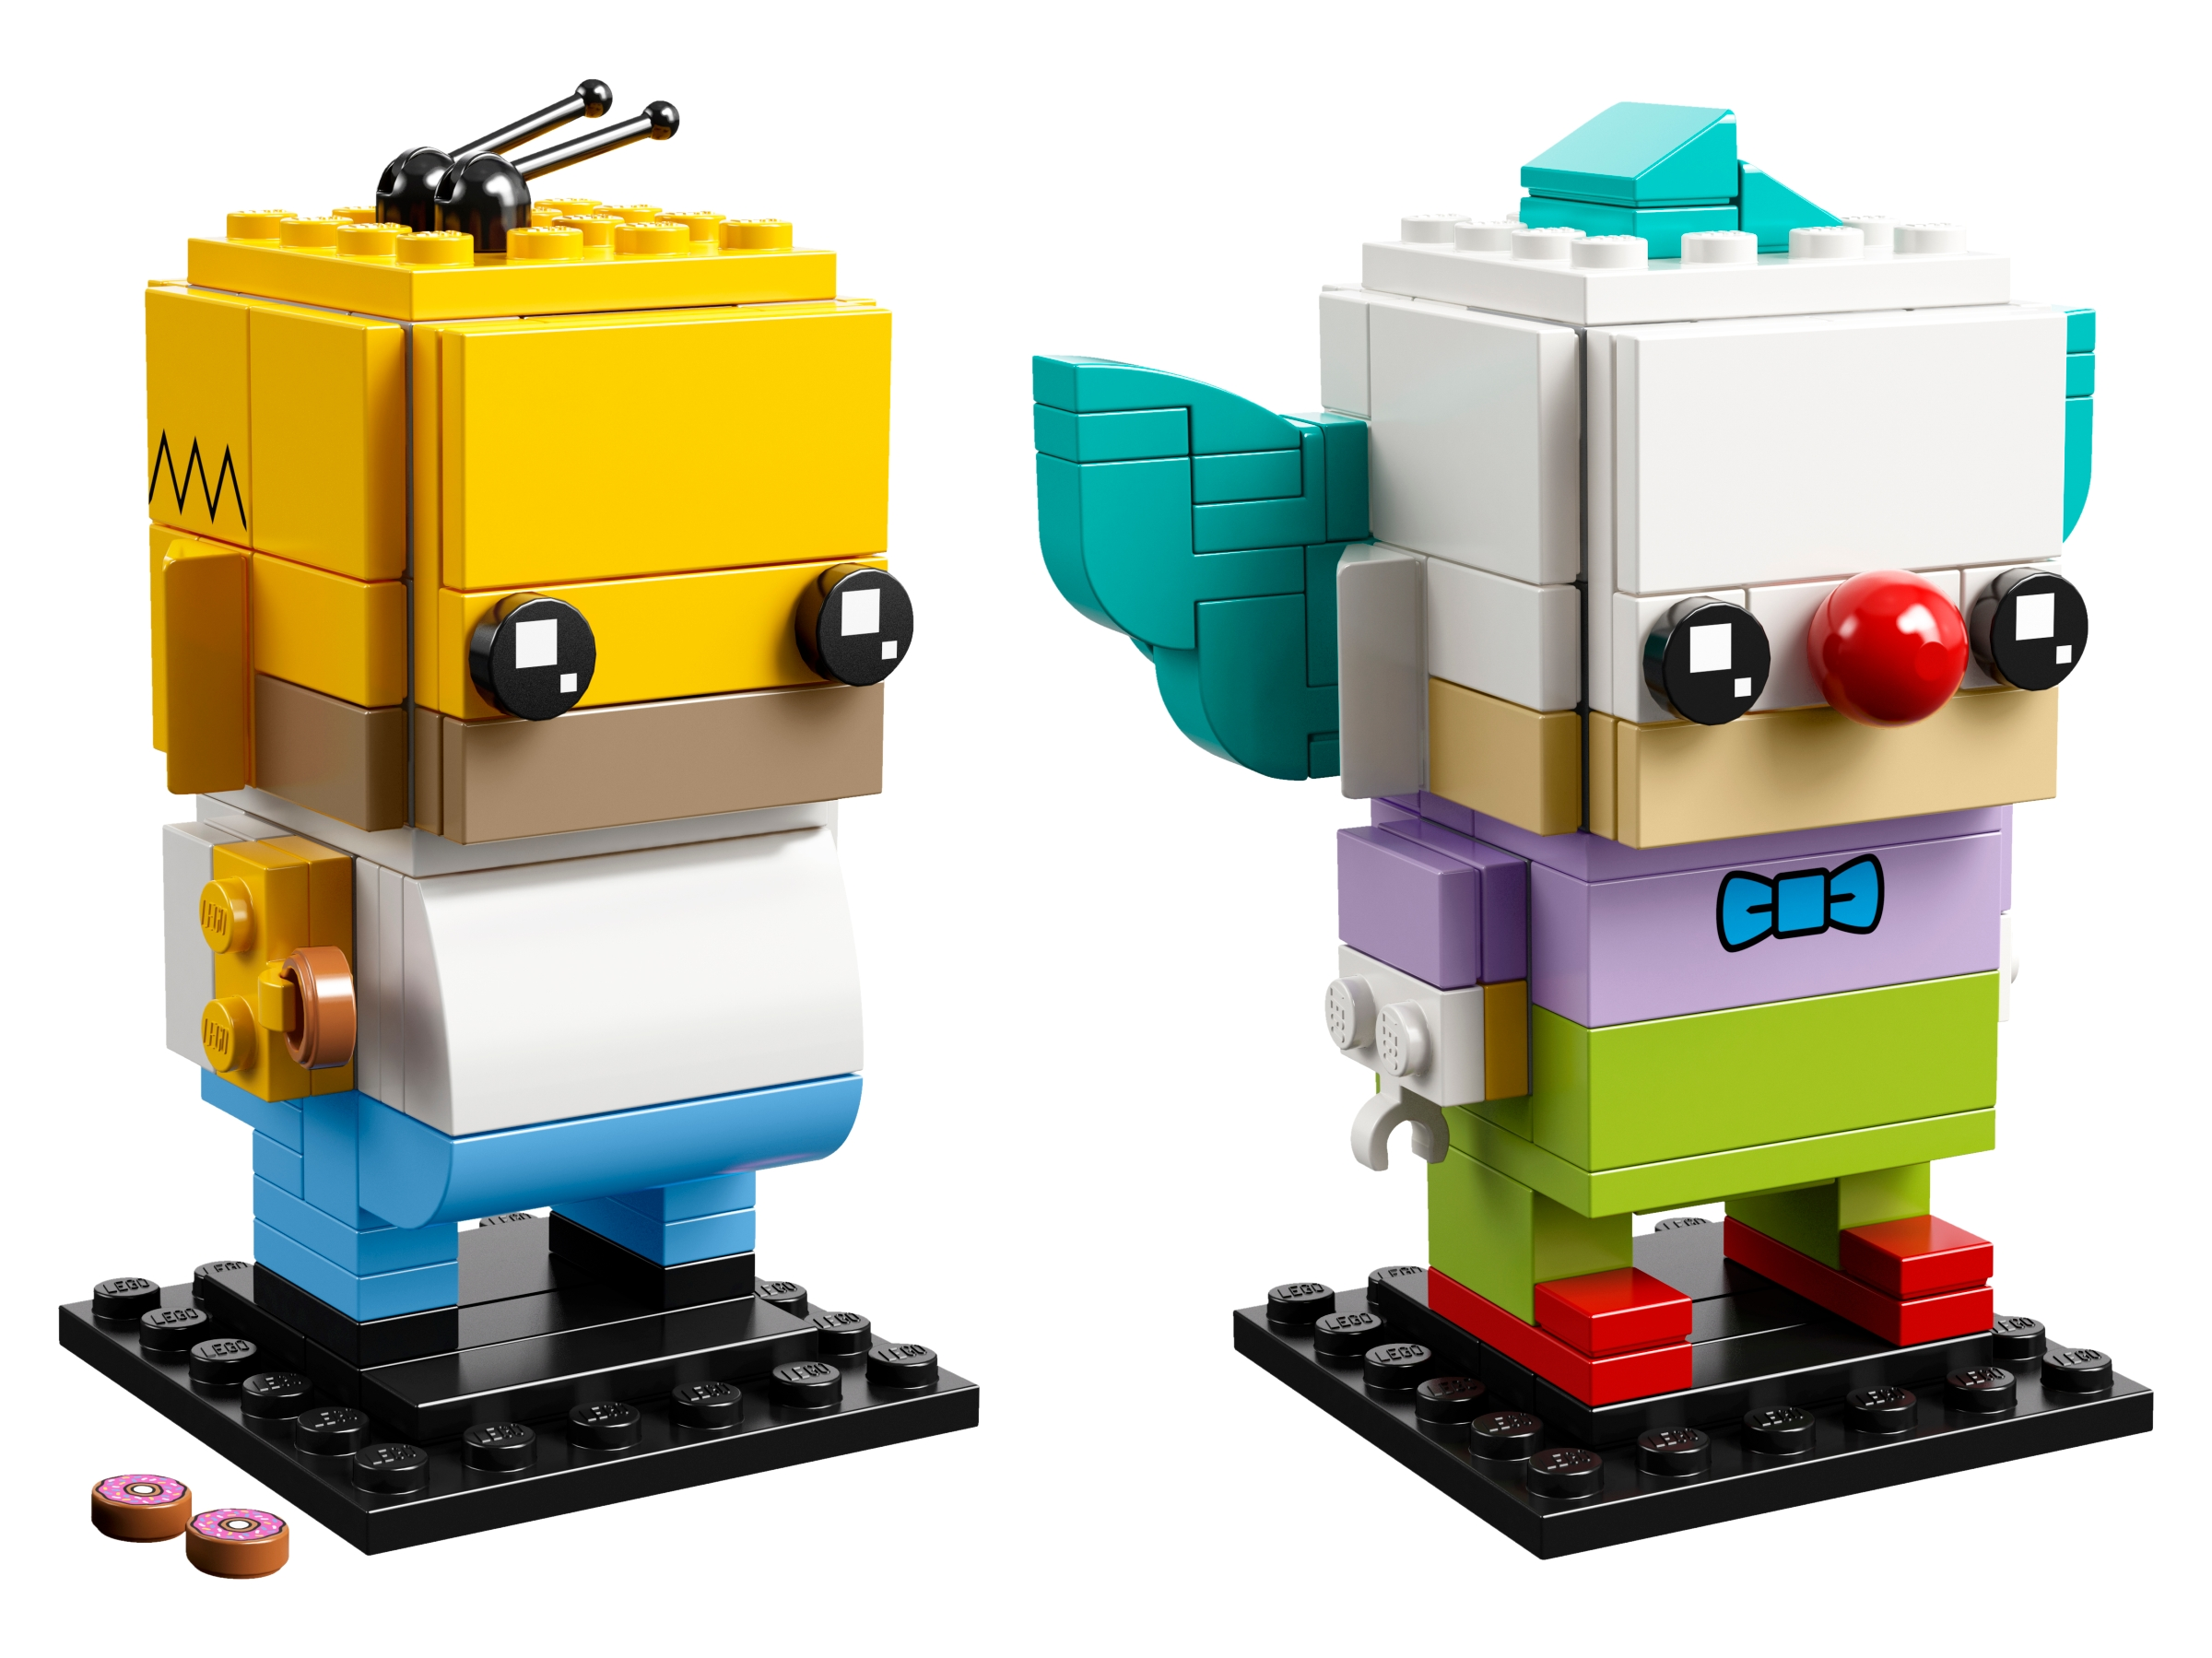 LEGO MINIFIGURES  SERIES THE SIMPSONS X 1 HEAD FOR KRUSTY THE CLOWN PARTS